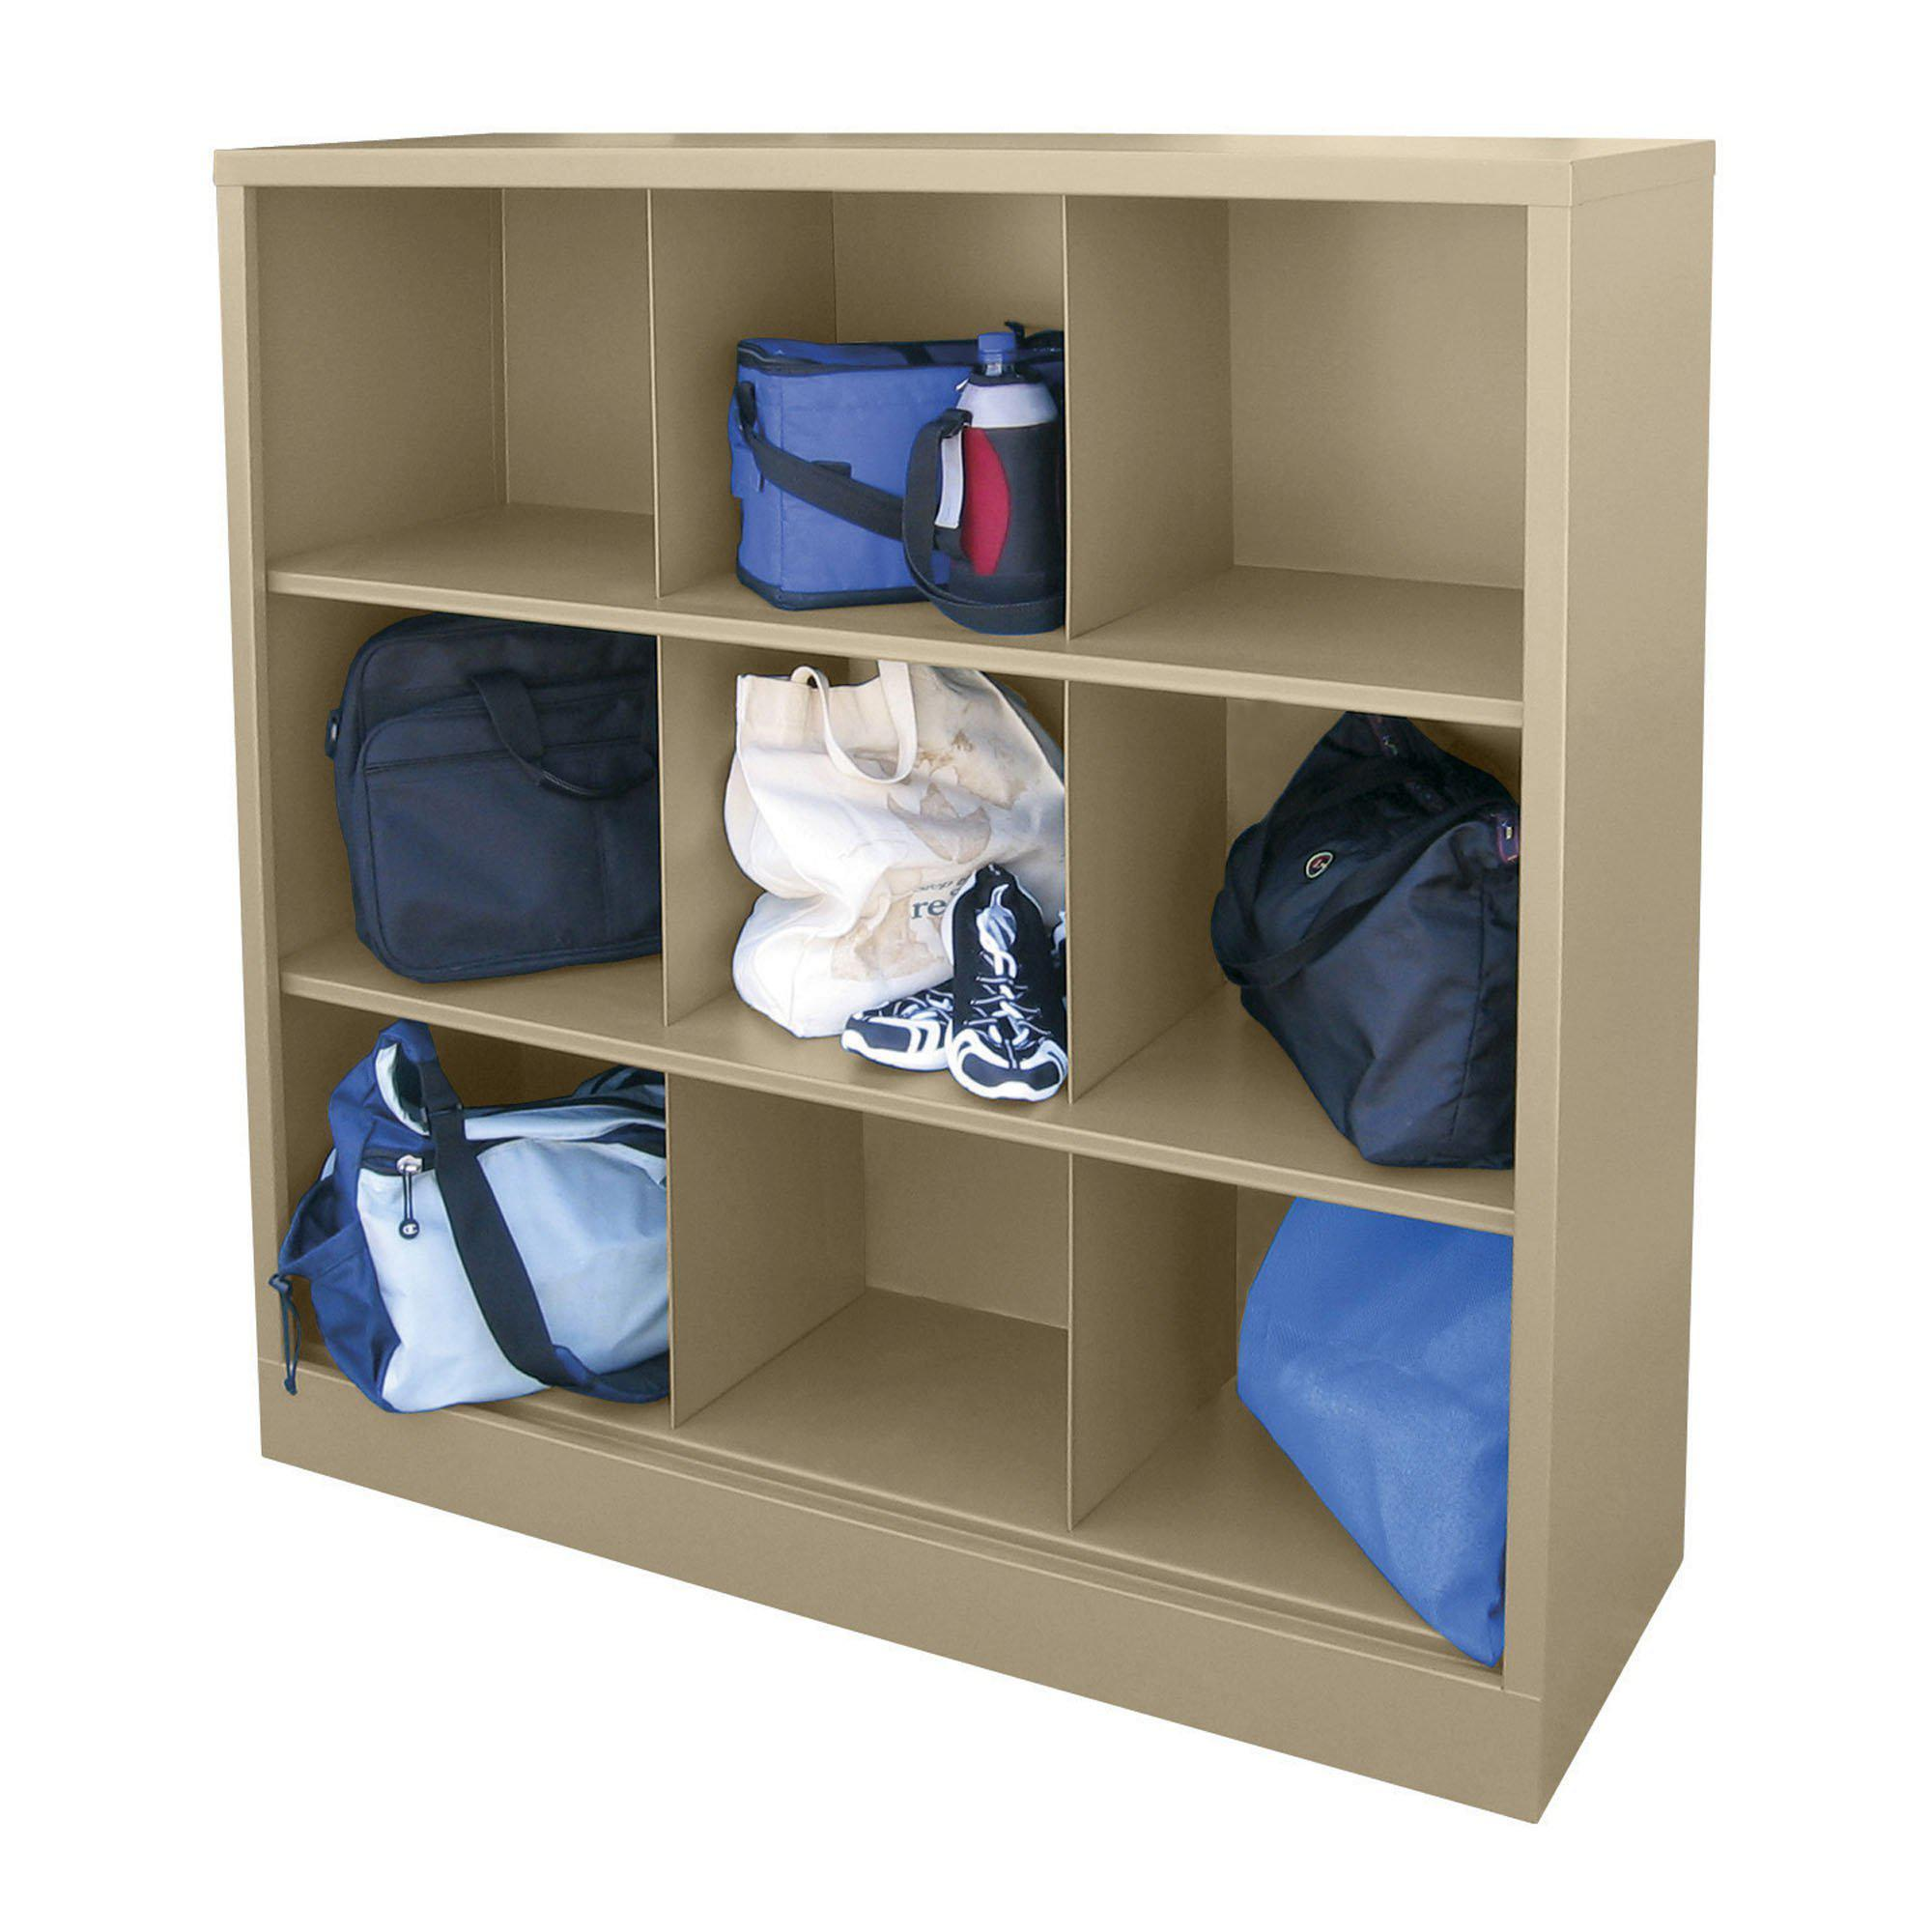 Cubby Storage Organizer, 9 Sections, 46 x 18 x 52